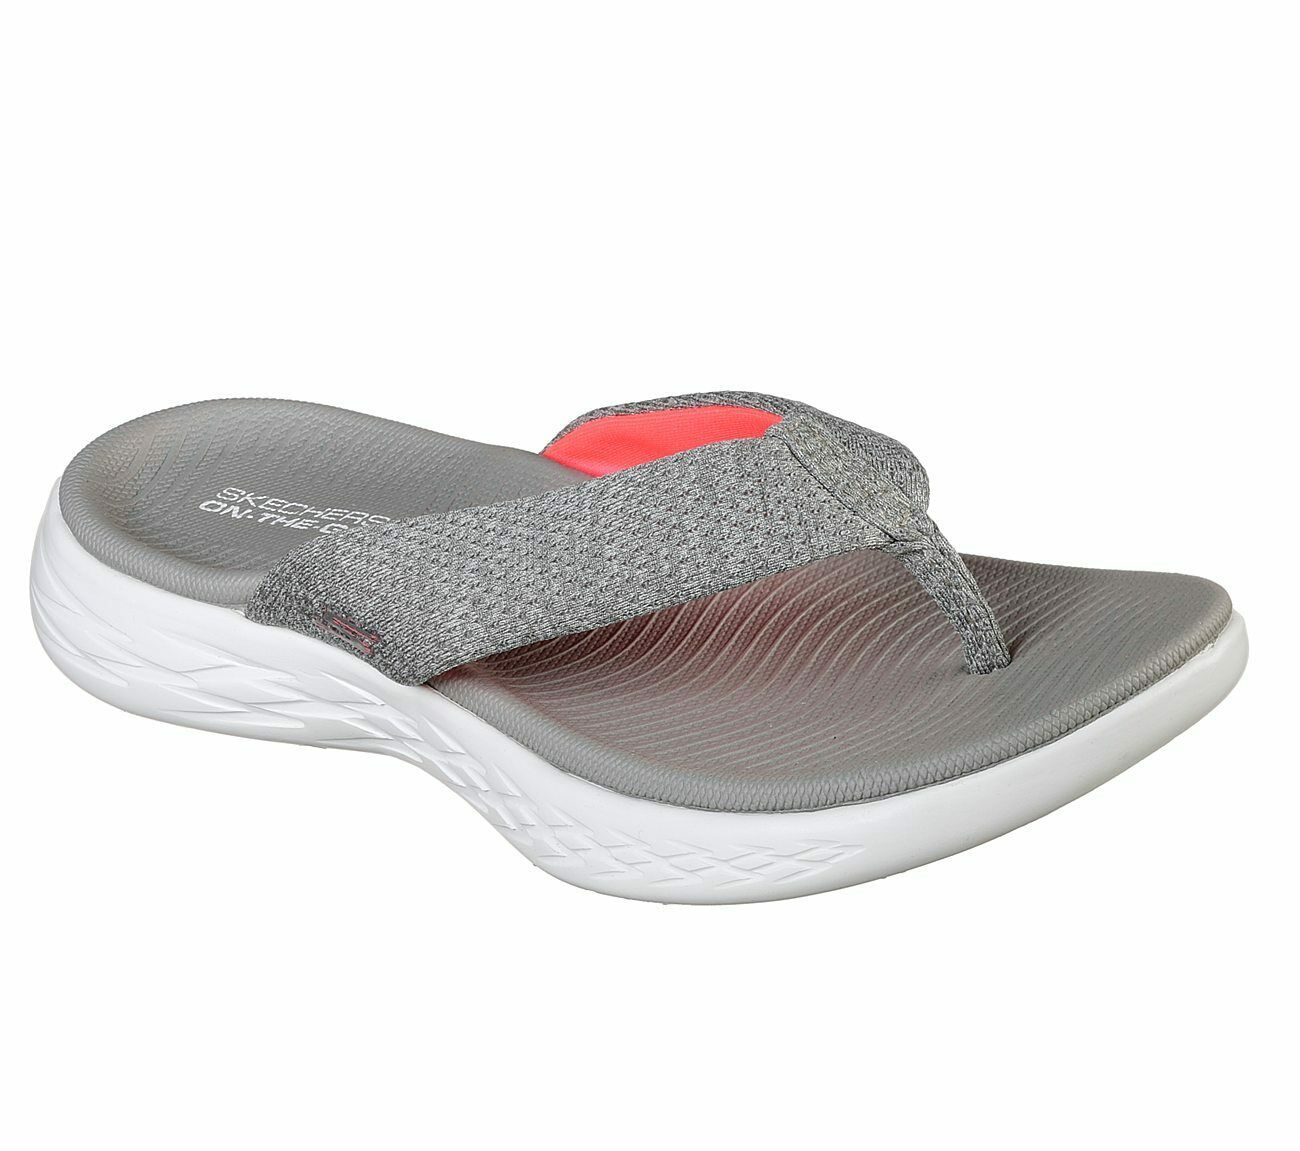 Skechers in Movimento 600 600 600 Preferito Flip Infradito Sandali Fermacapelli Donna efb484